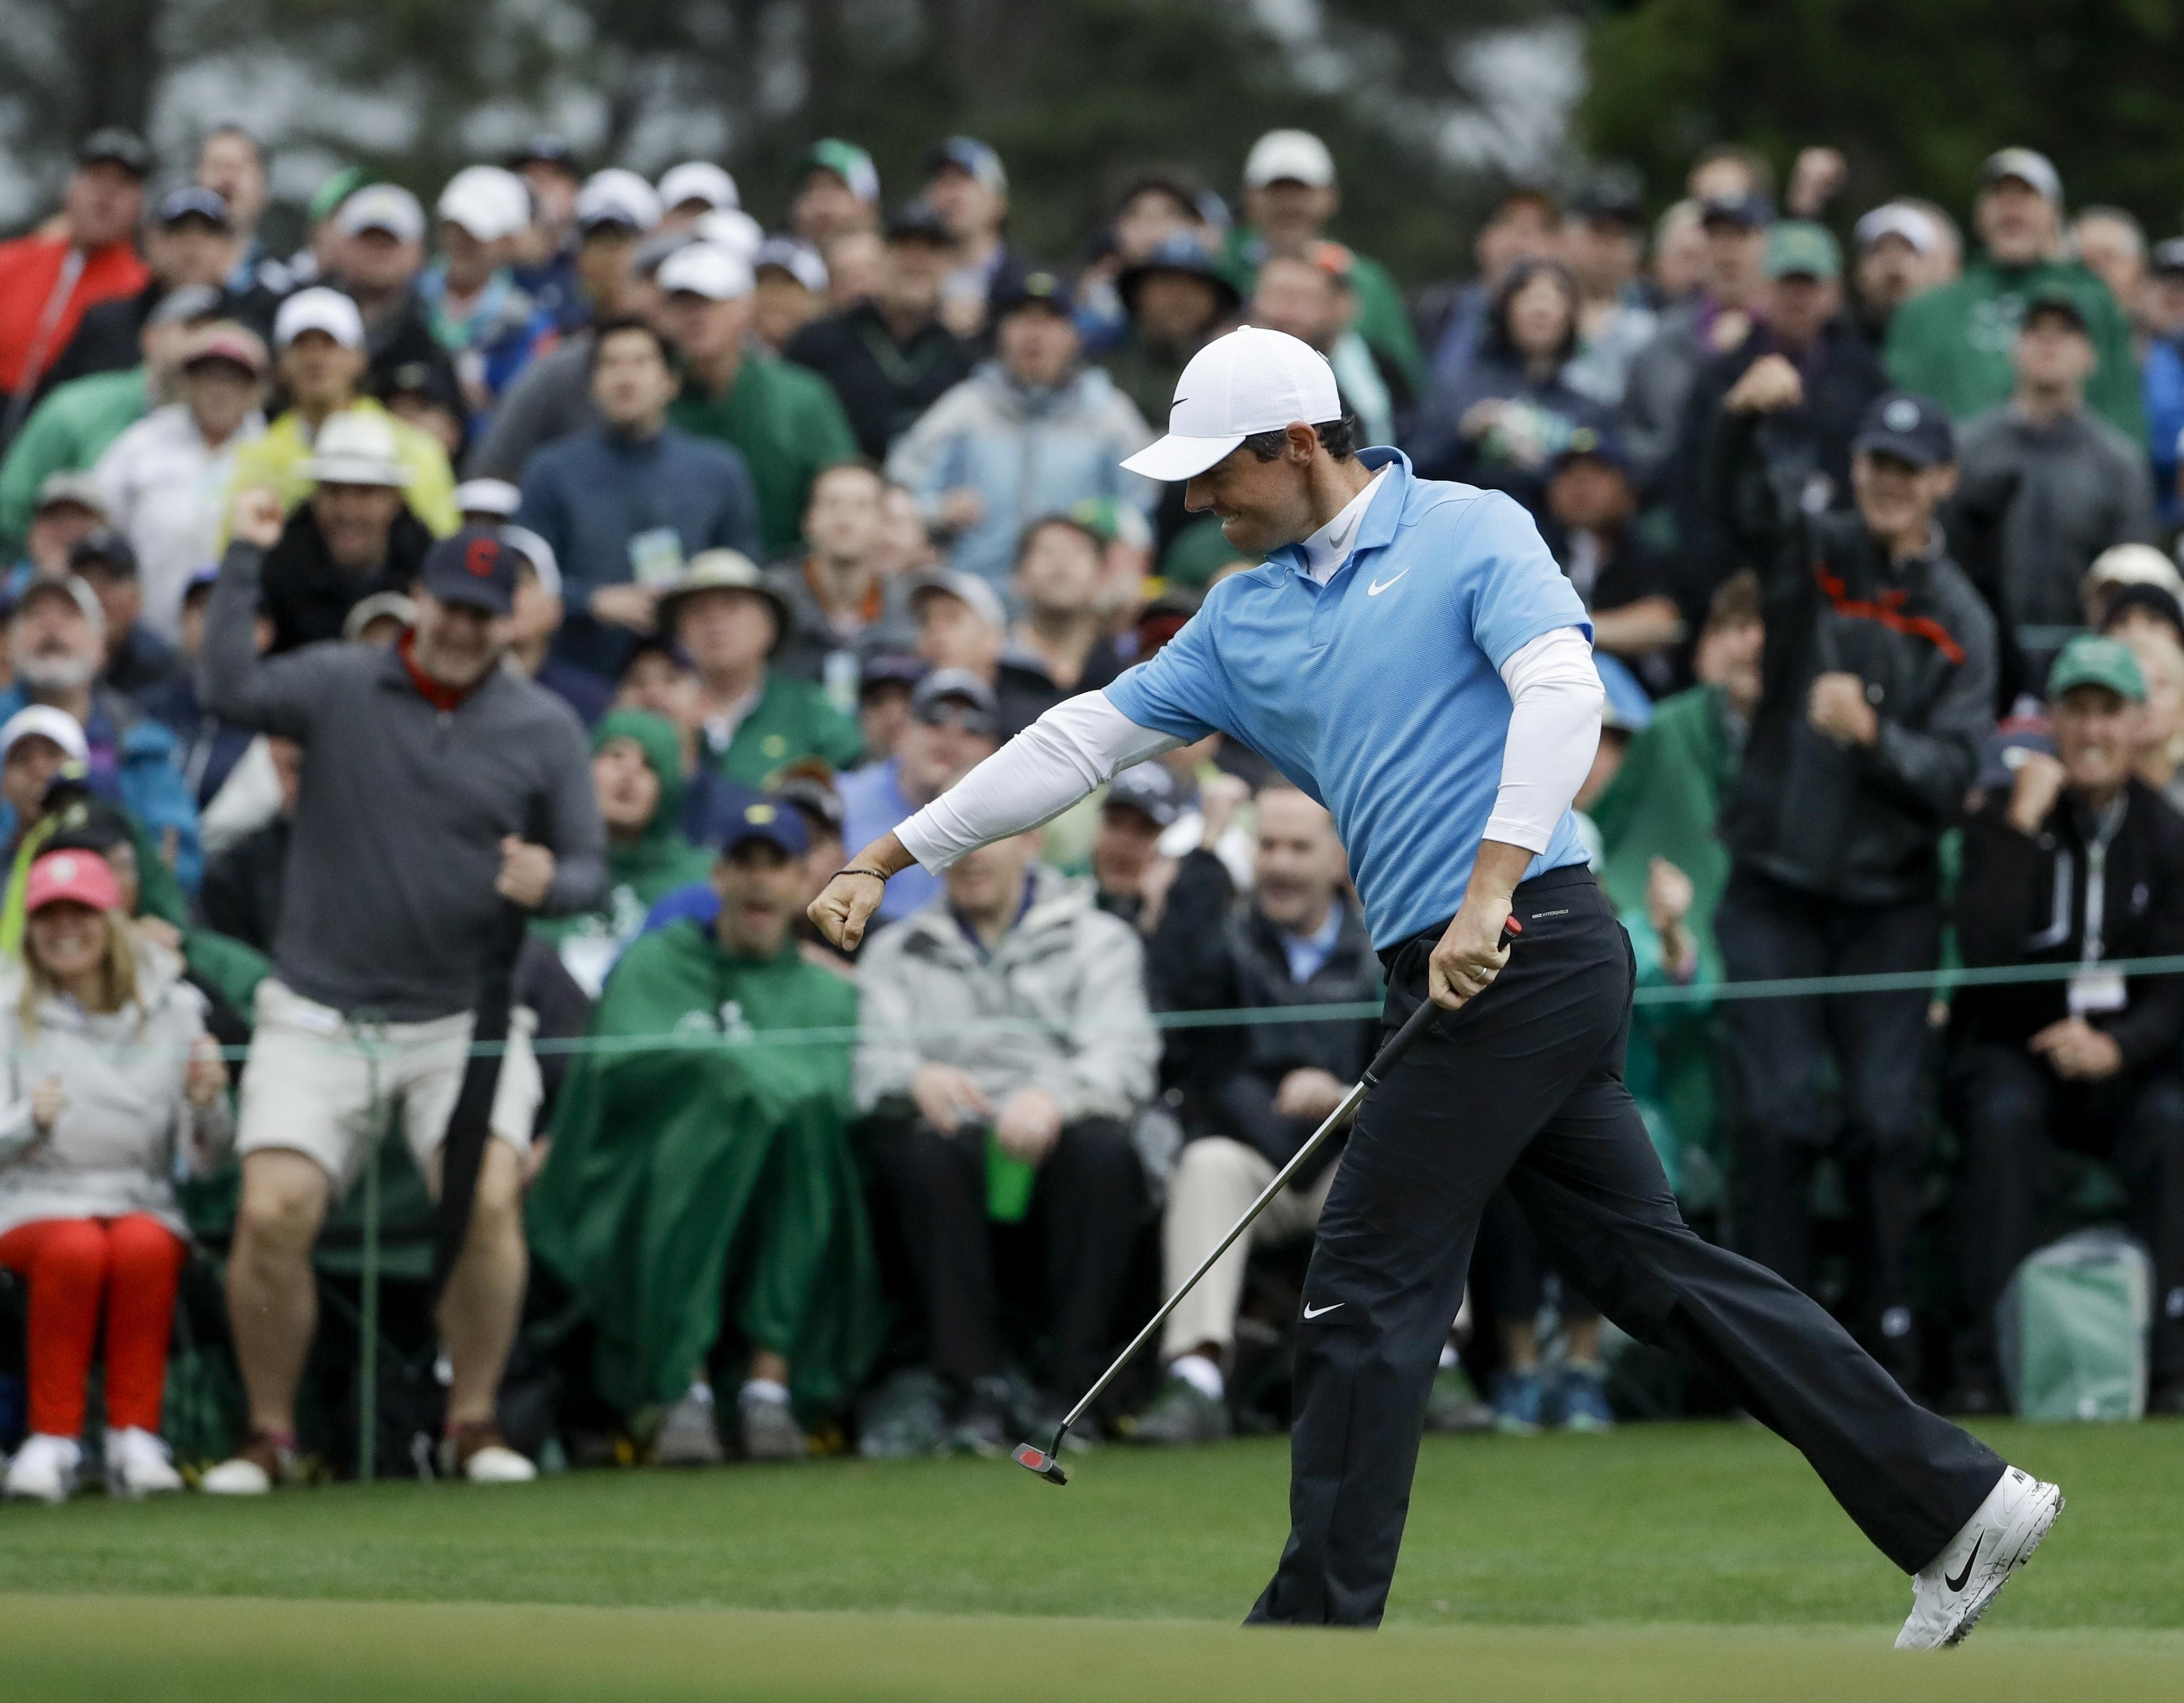 Rory McIlroy holes his birdie putt at the 18th on Saturday